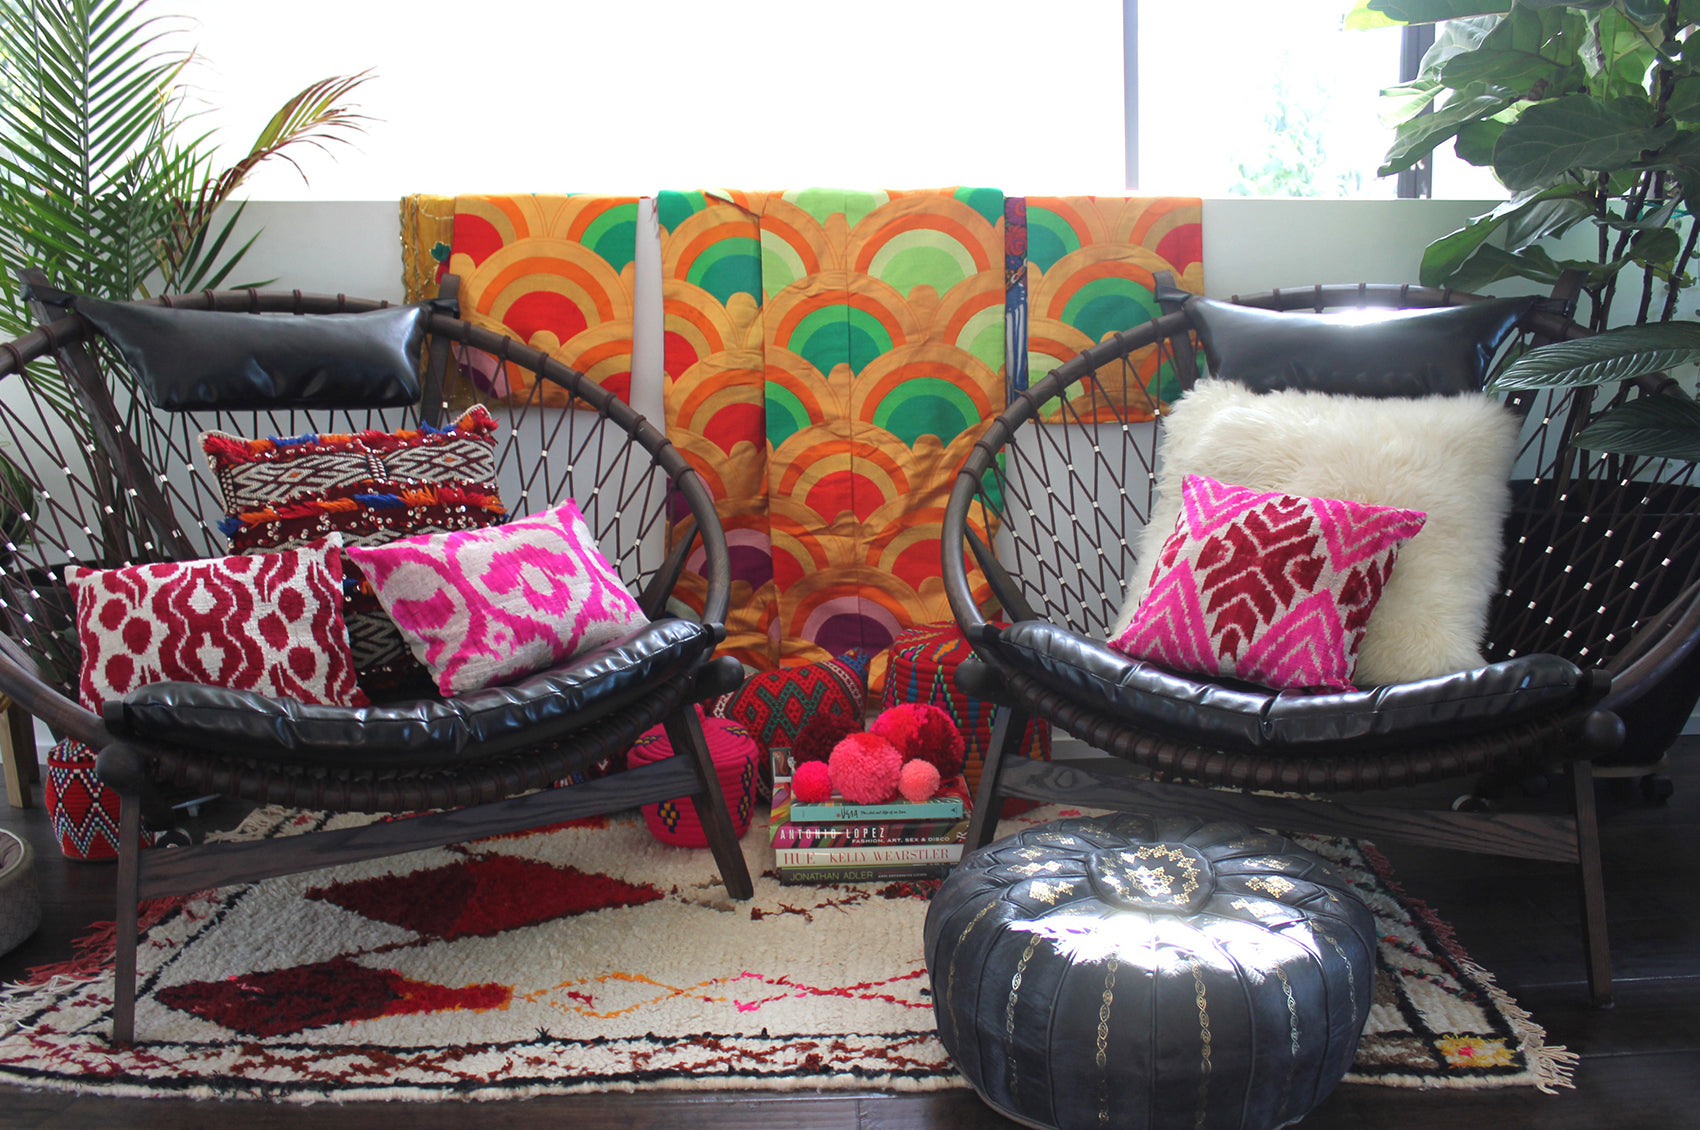 Rosa's sitting area decorated with colorful pillows, carpet, and wall hangings.